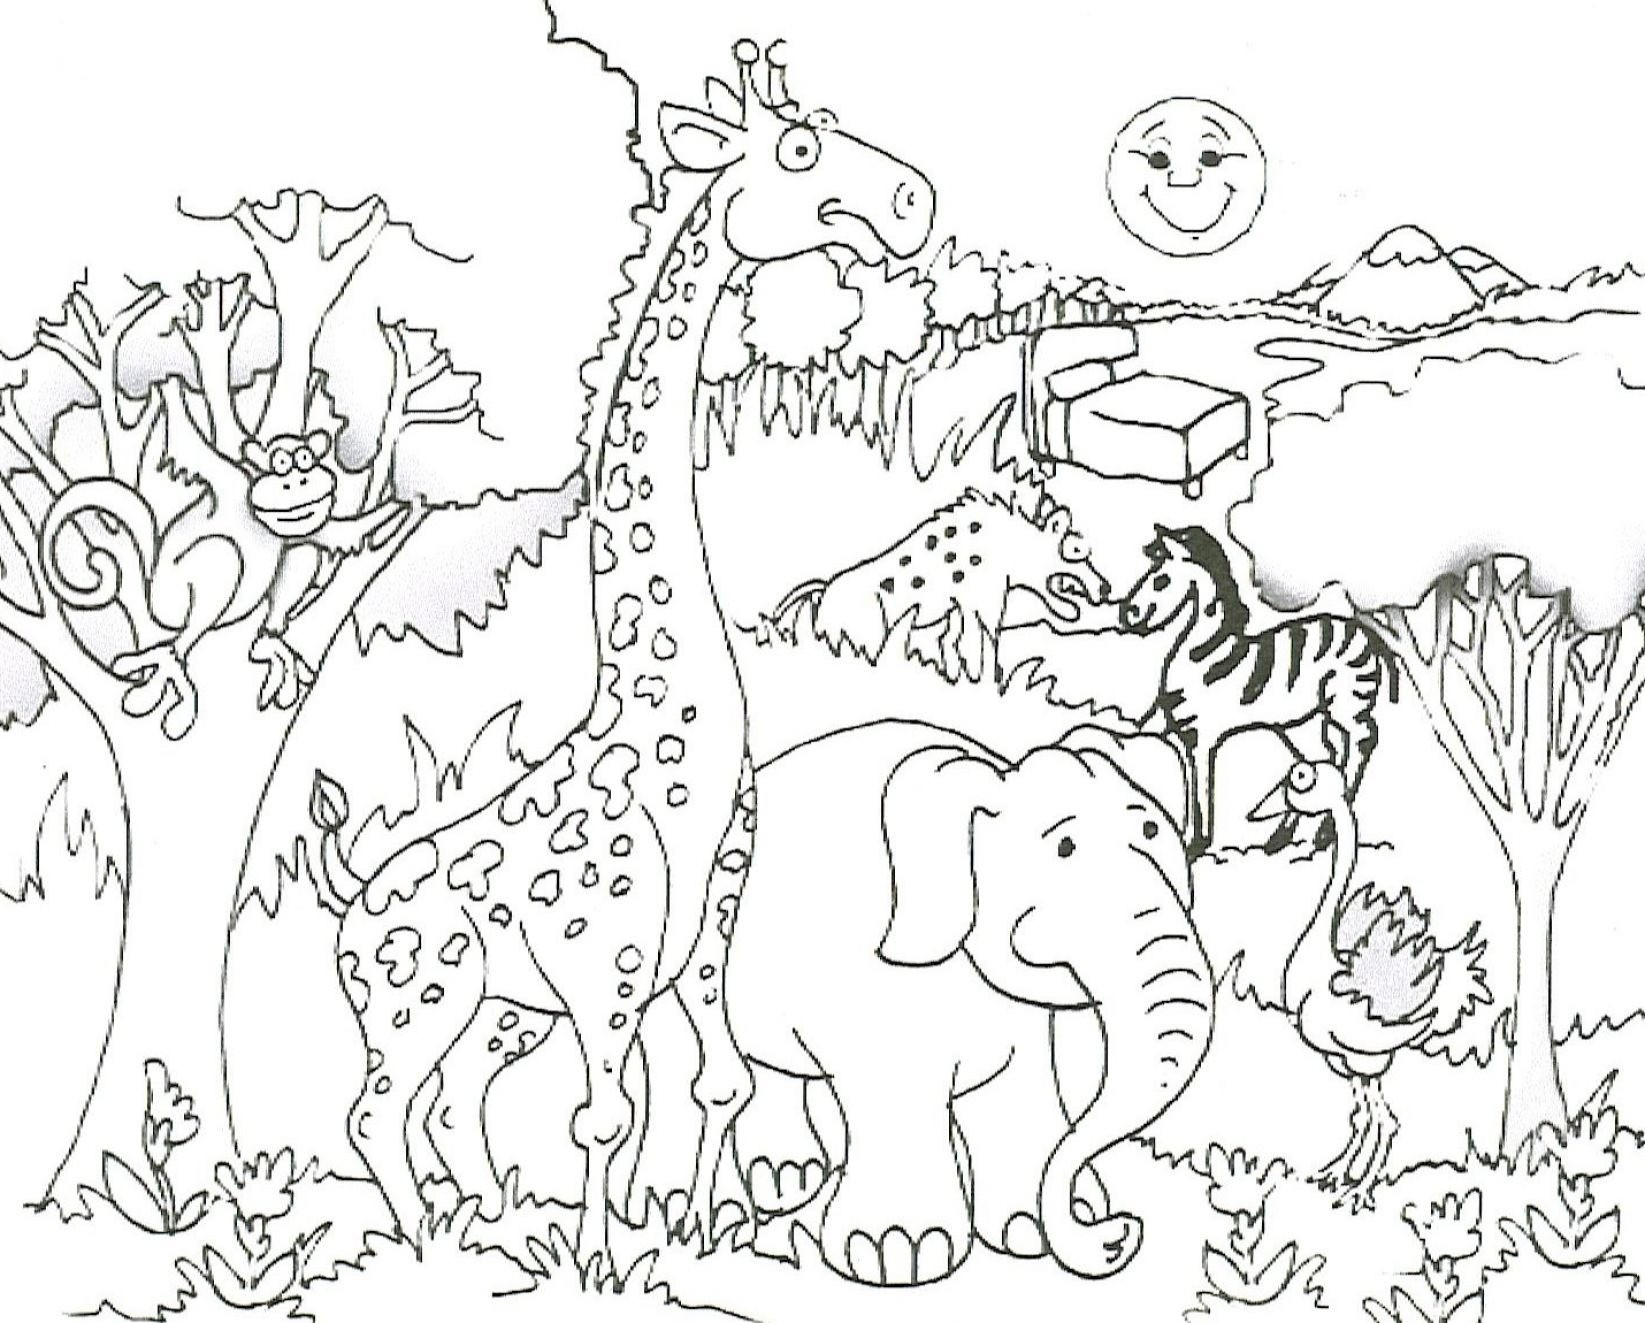 Coloring Book World ~ Top Free Printable Wild Animals Coloring Pages - Free Printable Wild Animal Coloring Pages